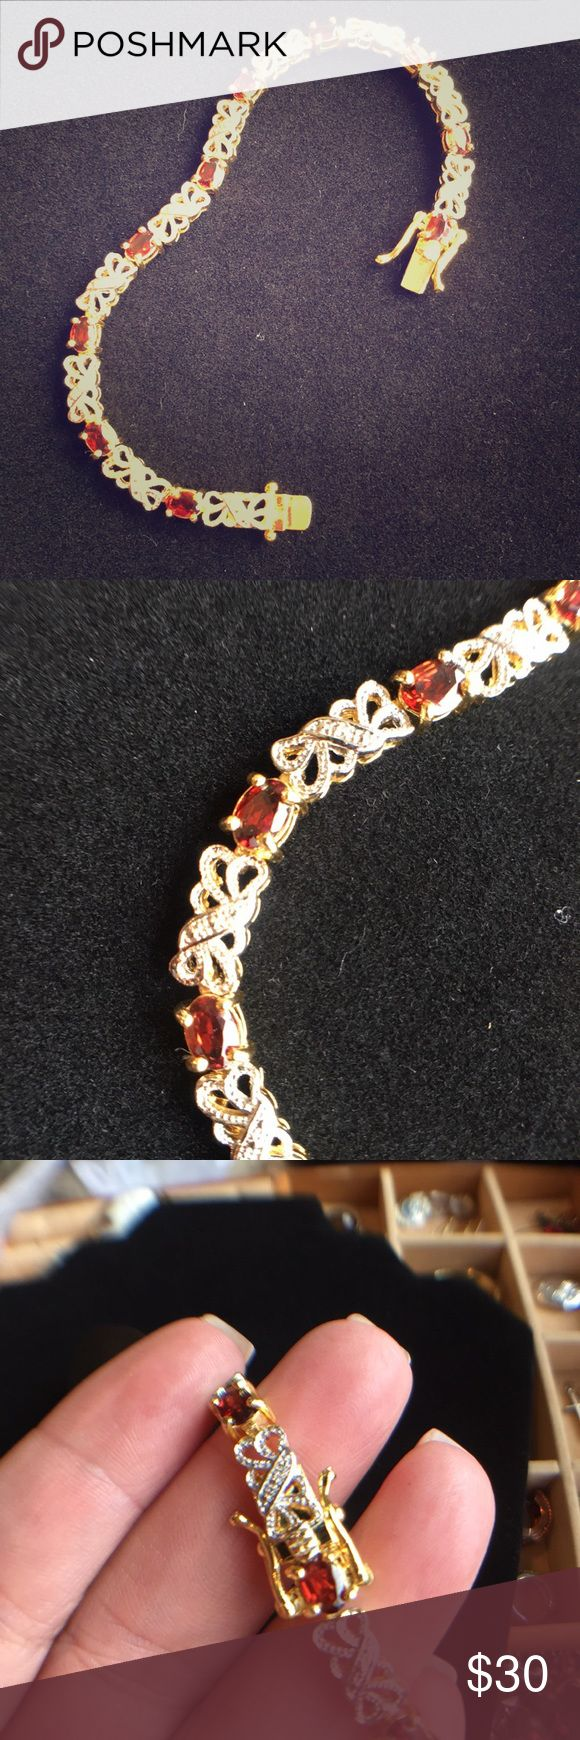 """Garnet and Silver Bracelet This is a 7 inch bracelet with 10 small garnets. It is marked """"Han 925 Thai."""" It has a nice secure safety latch. Jewelry Bracelets"""